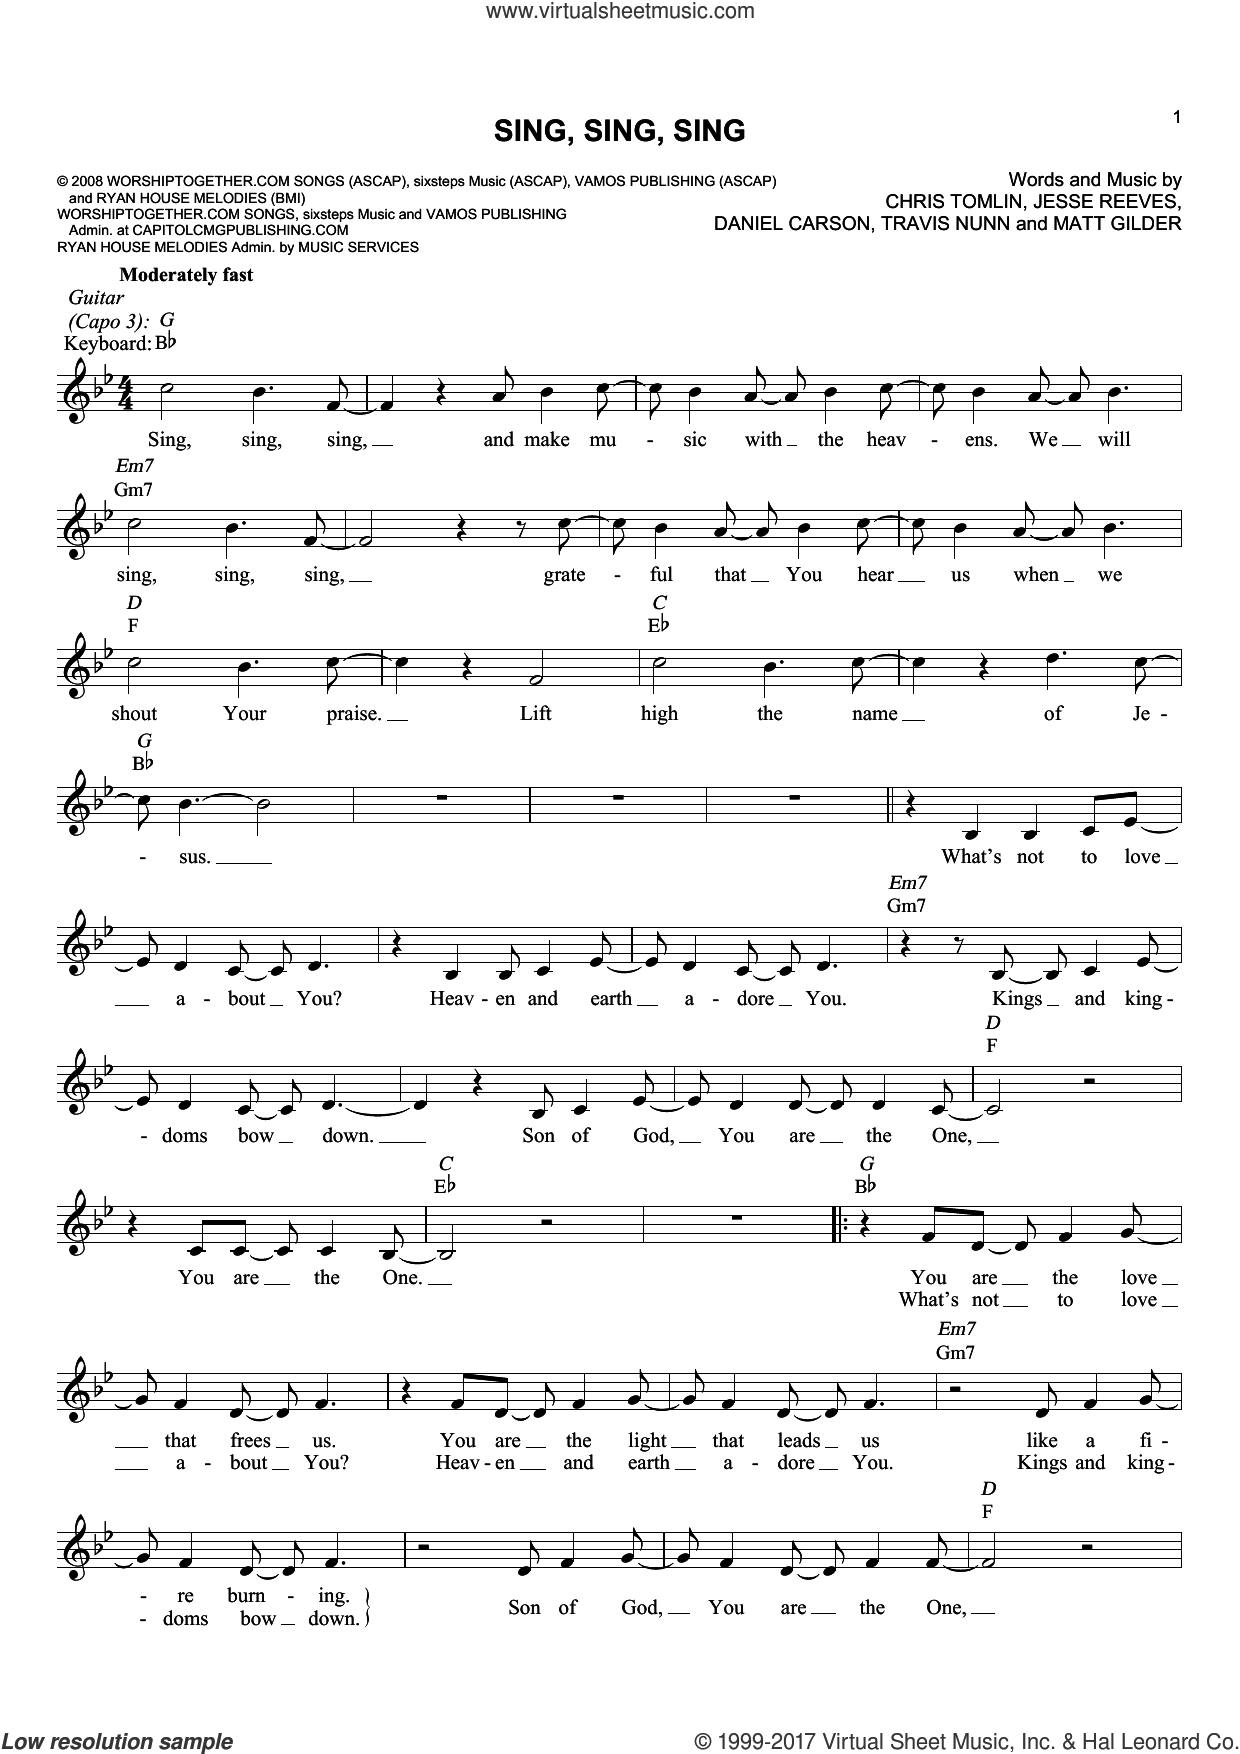 Sing Sing Sing sheet music for voice and other instruments (fake book) by Chris Tomlin, Daniel Carson, Jesse Reeves, Matt Gilder and Travis Nunn, intermediate skill level